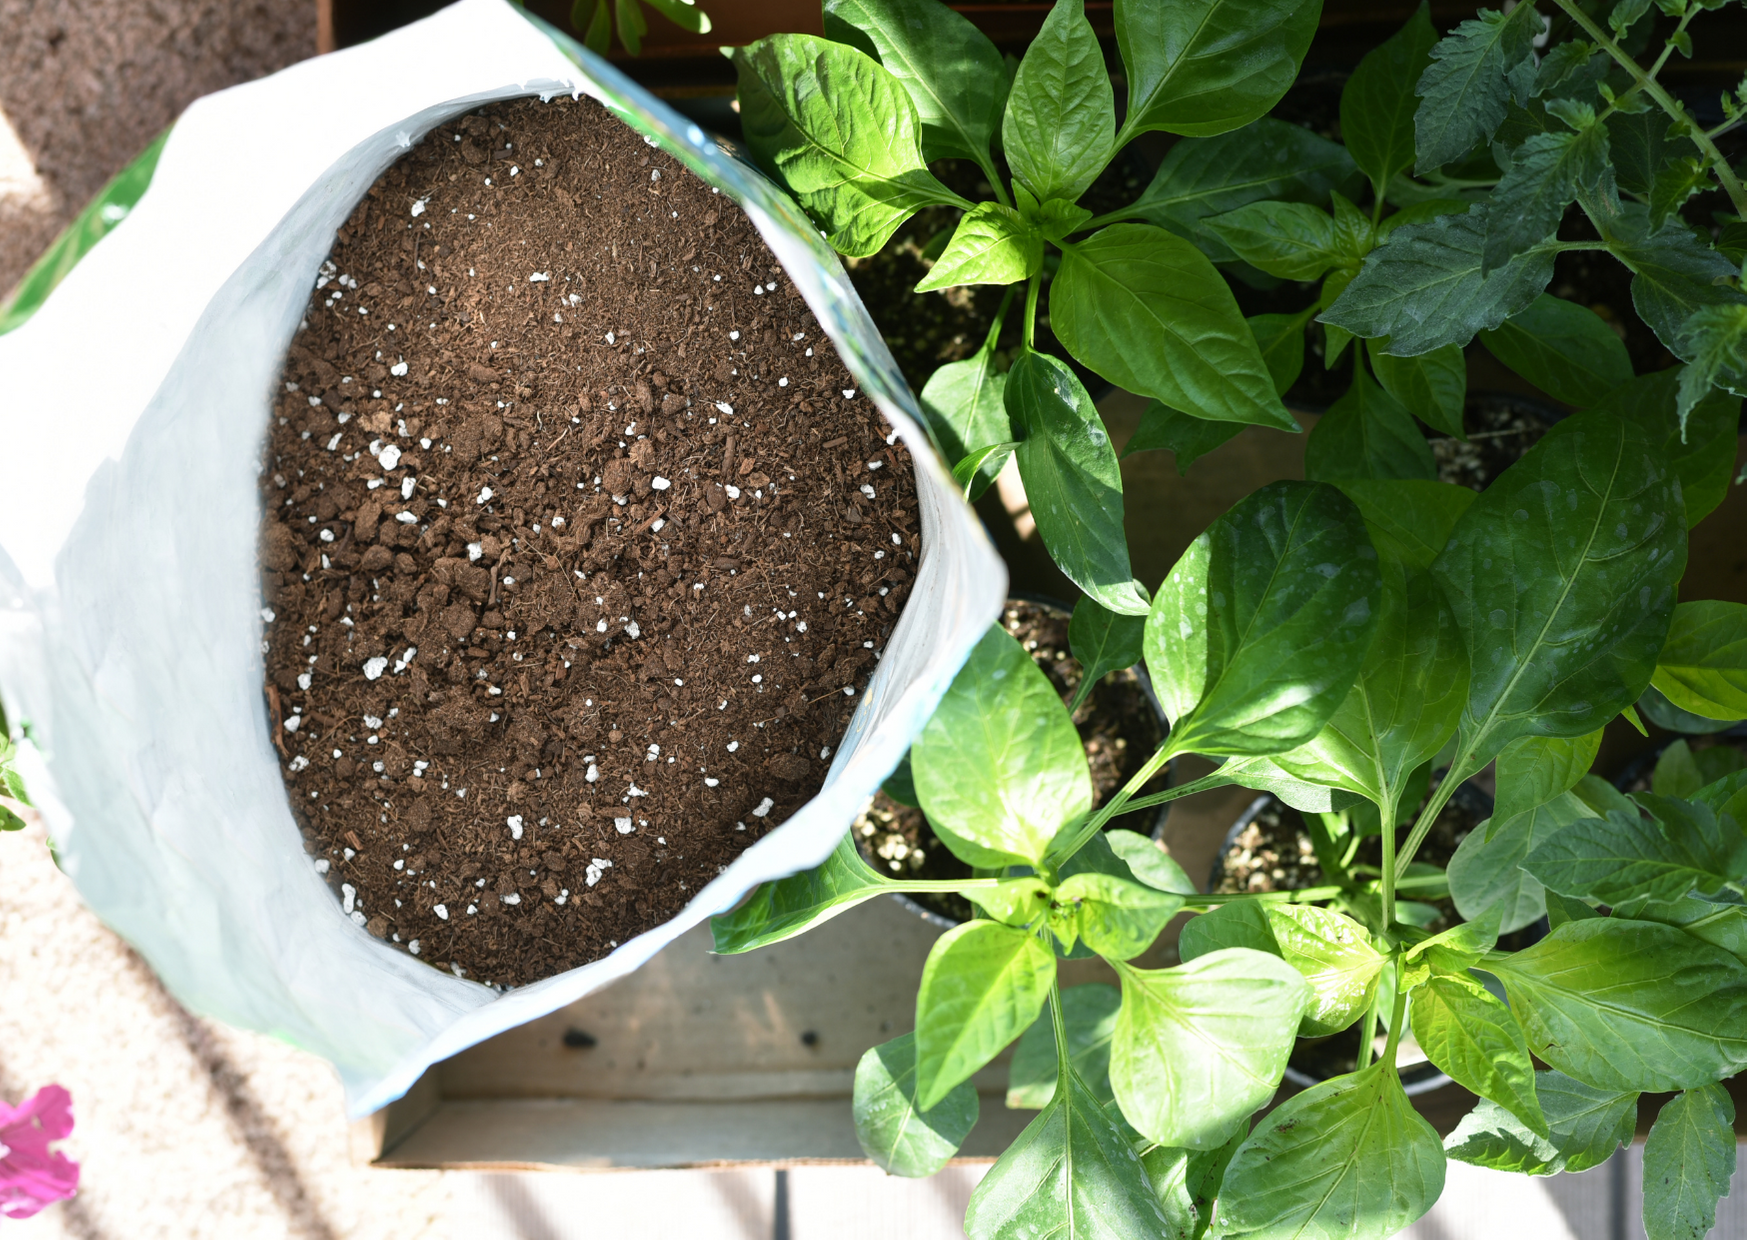 a sack of potting mix and a plants